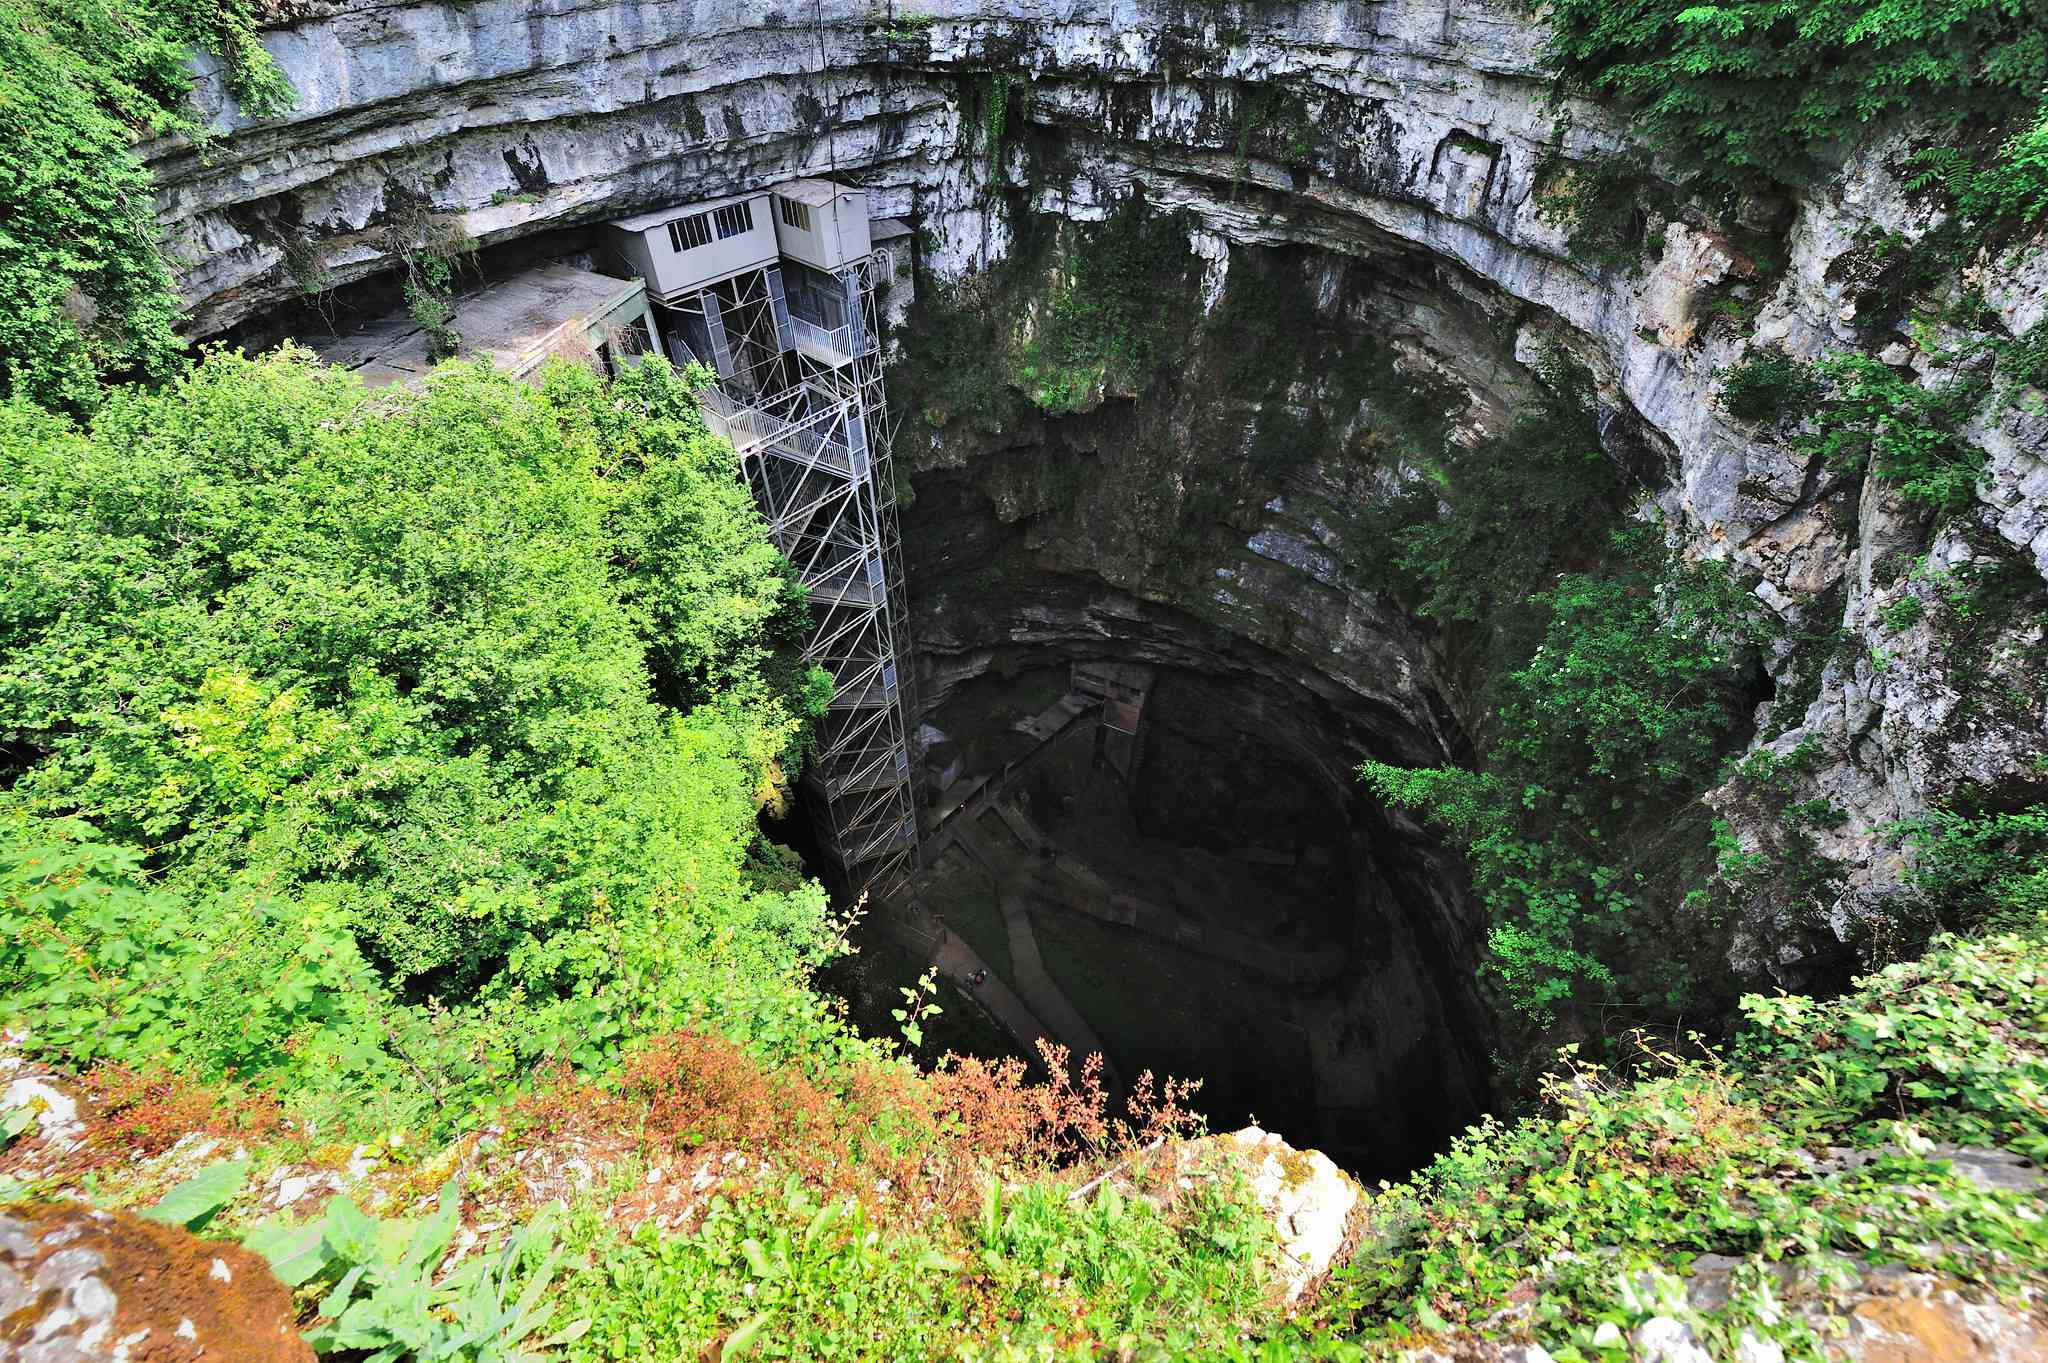 The opening of Padirac Cave in France with greenery growing around it